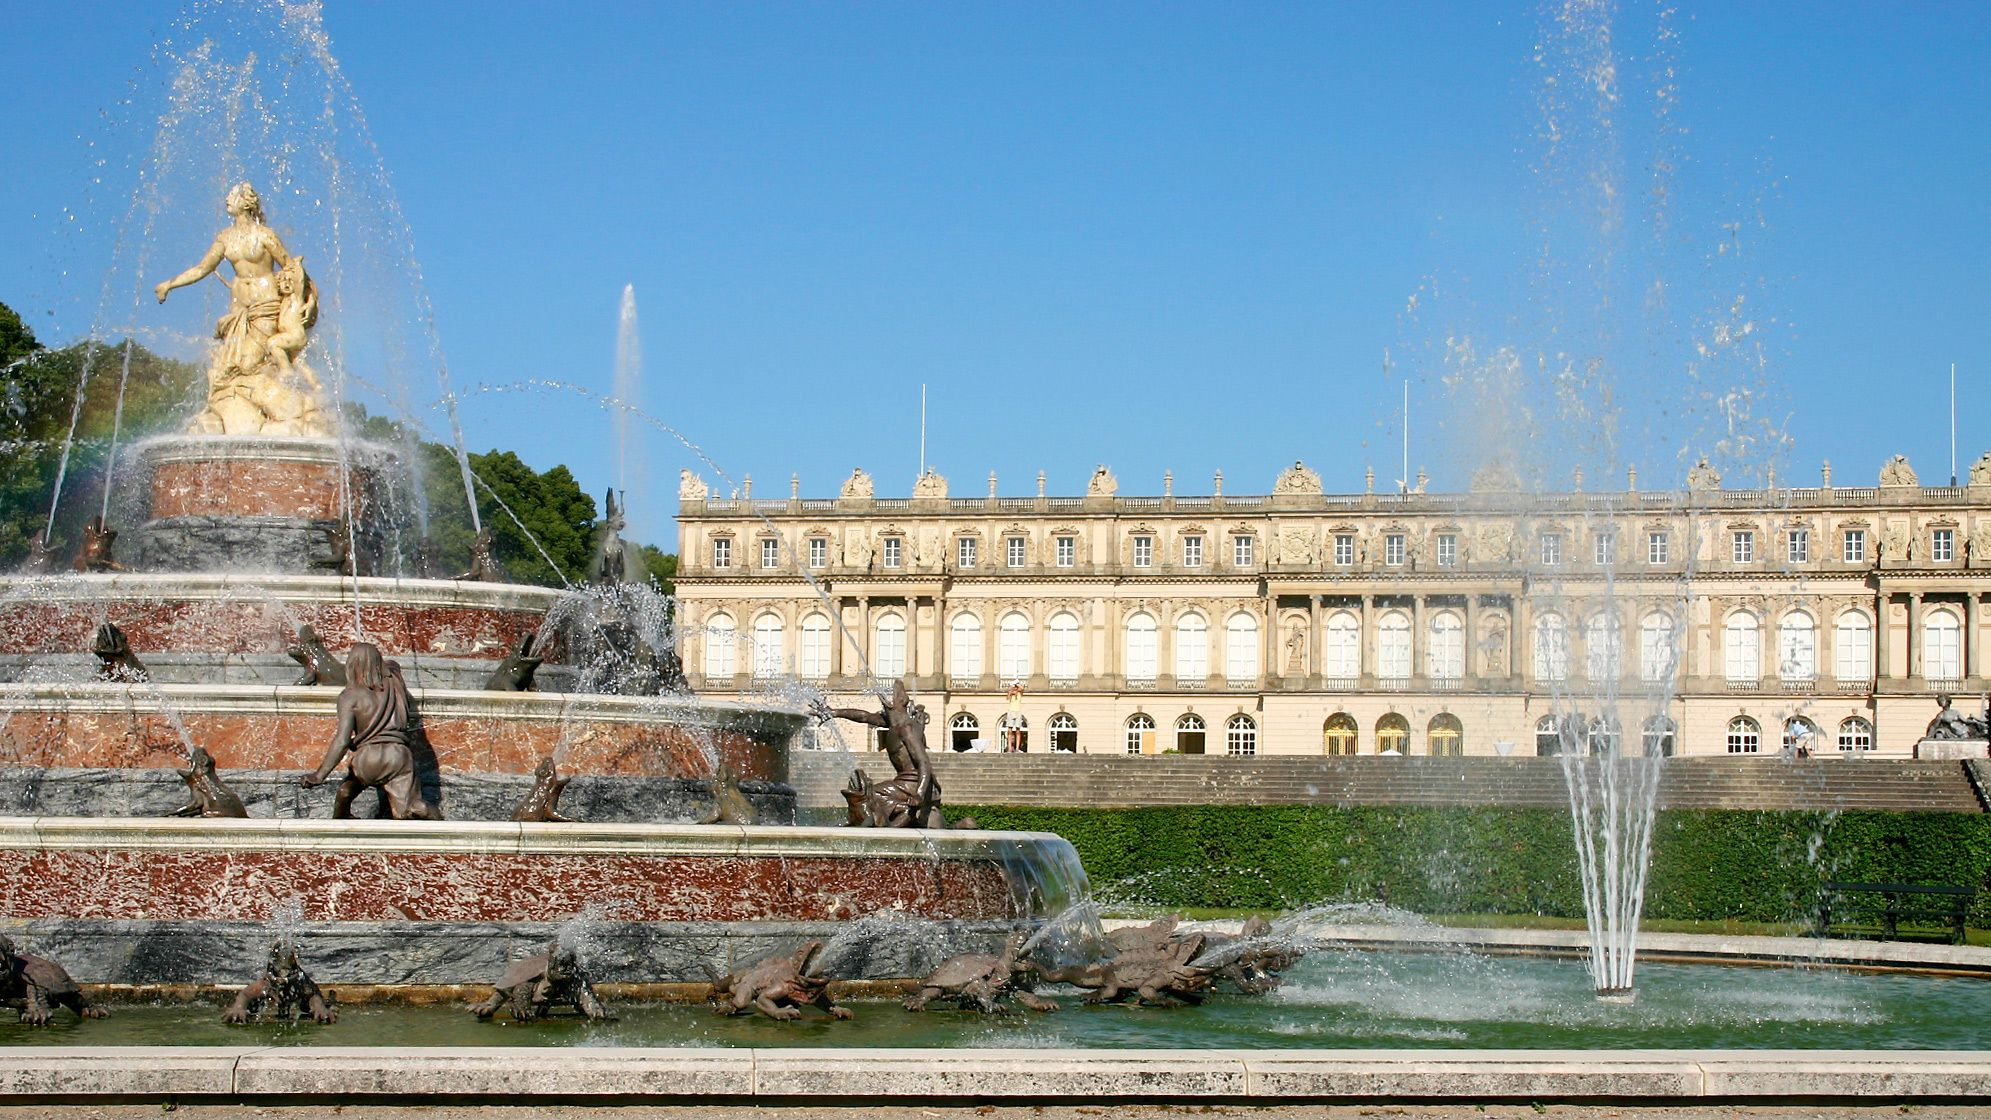 water fountains outside the Herrenchiemsee Castle in Germany